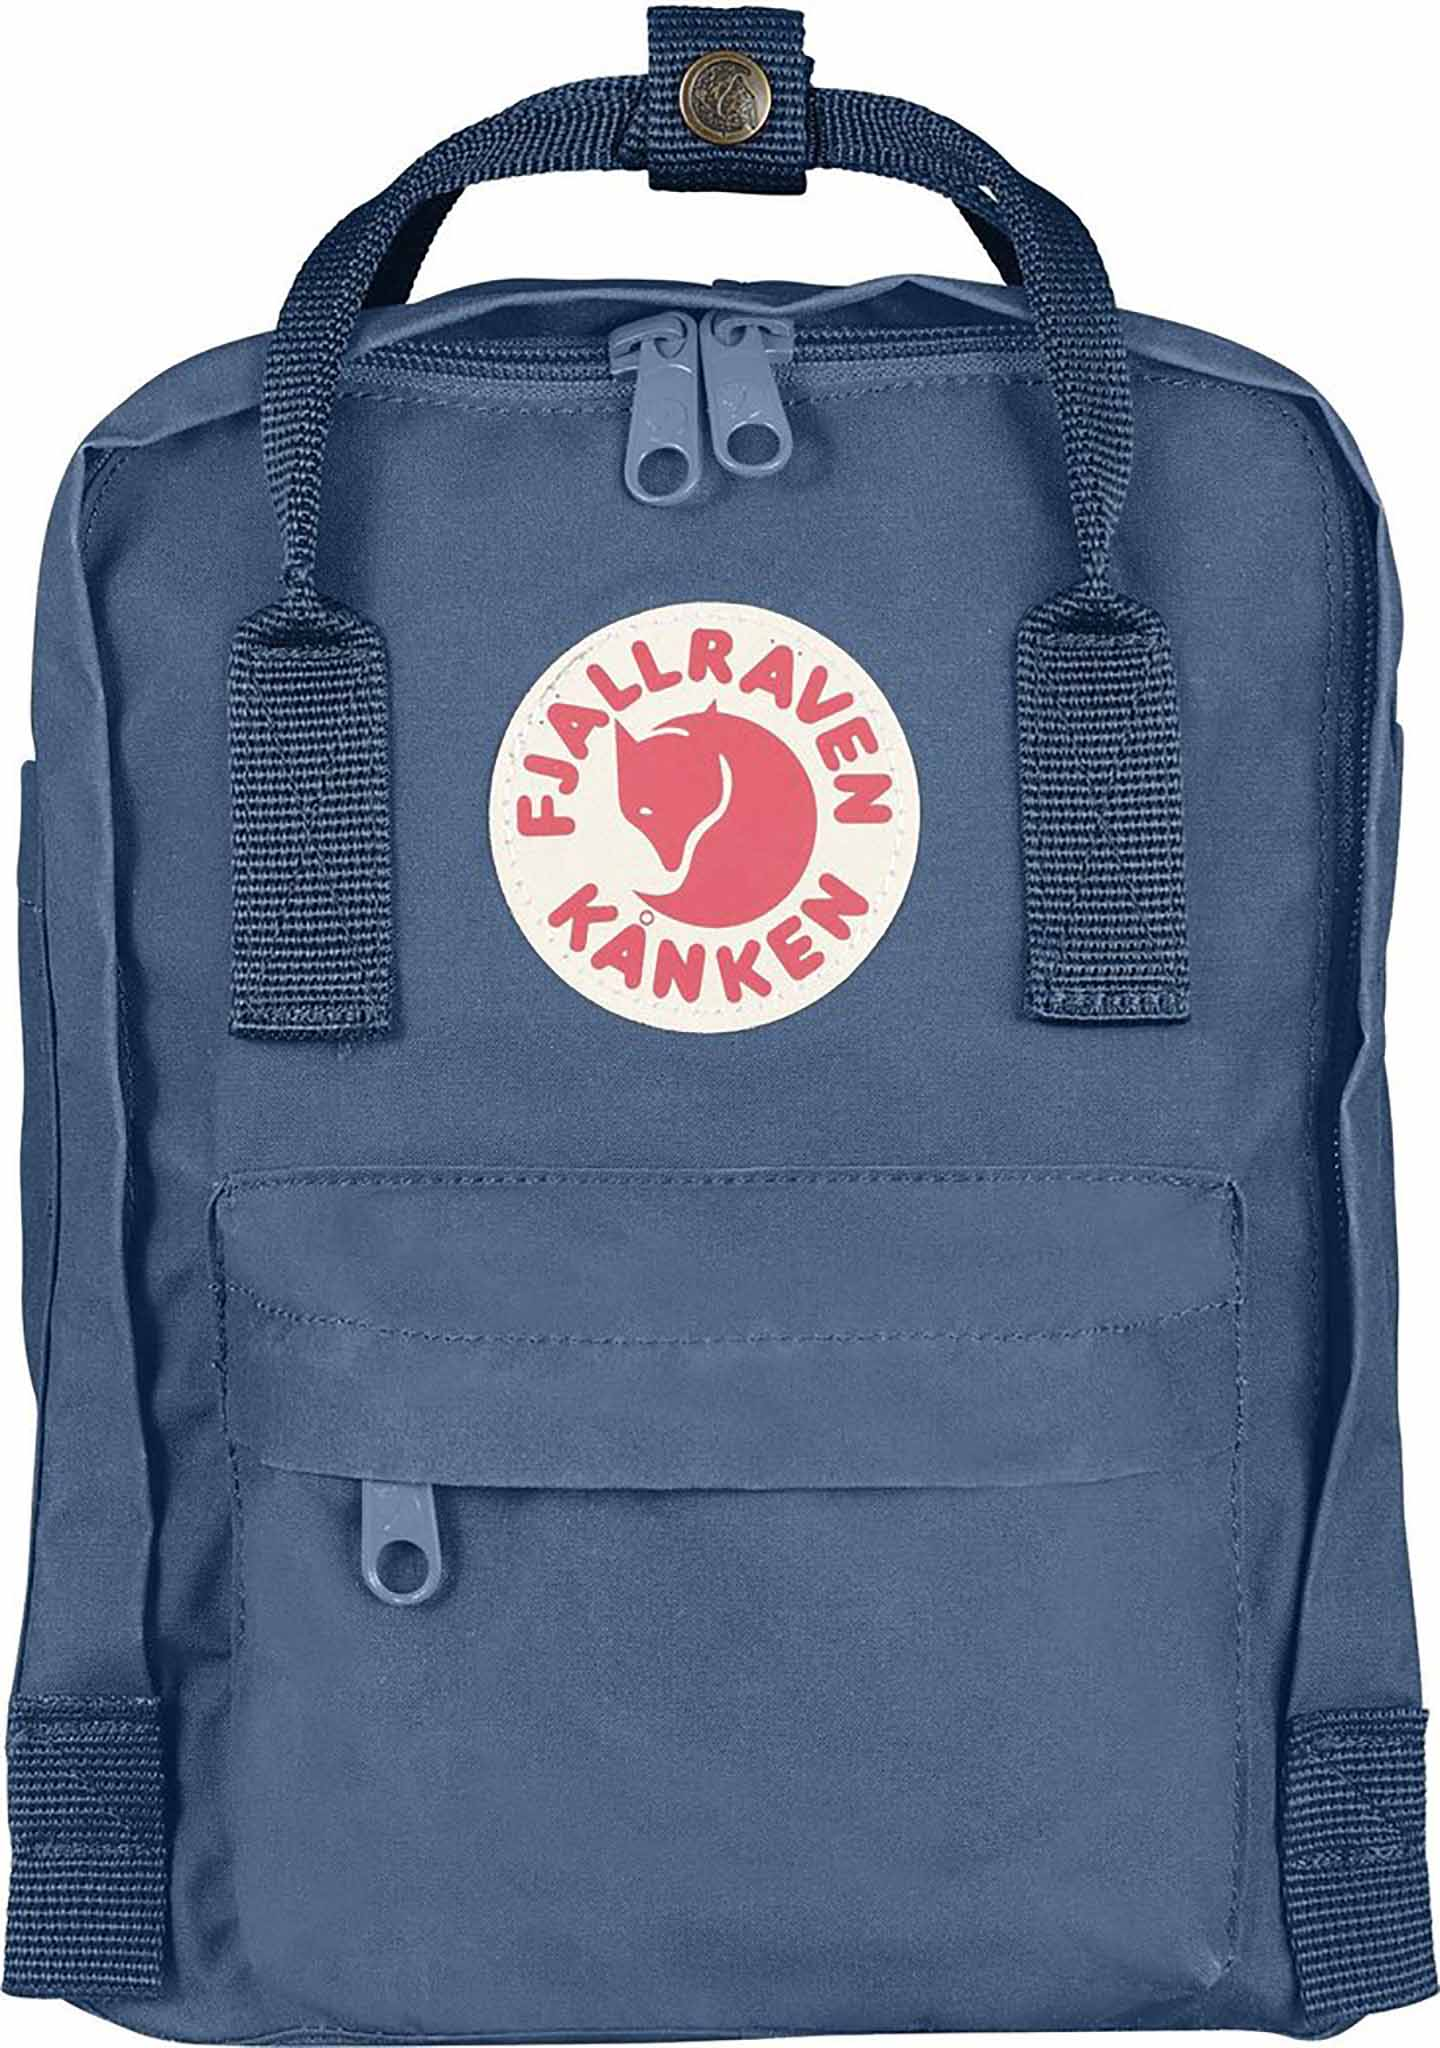 Kanken Mini Backpack in Blue Ridge